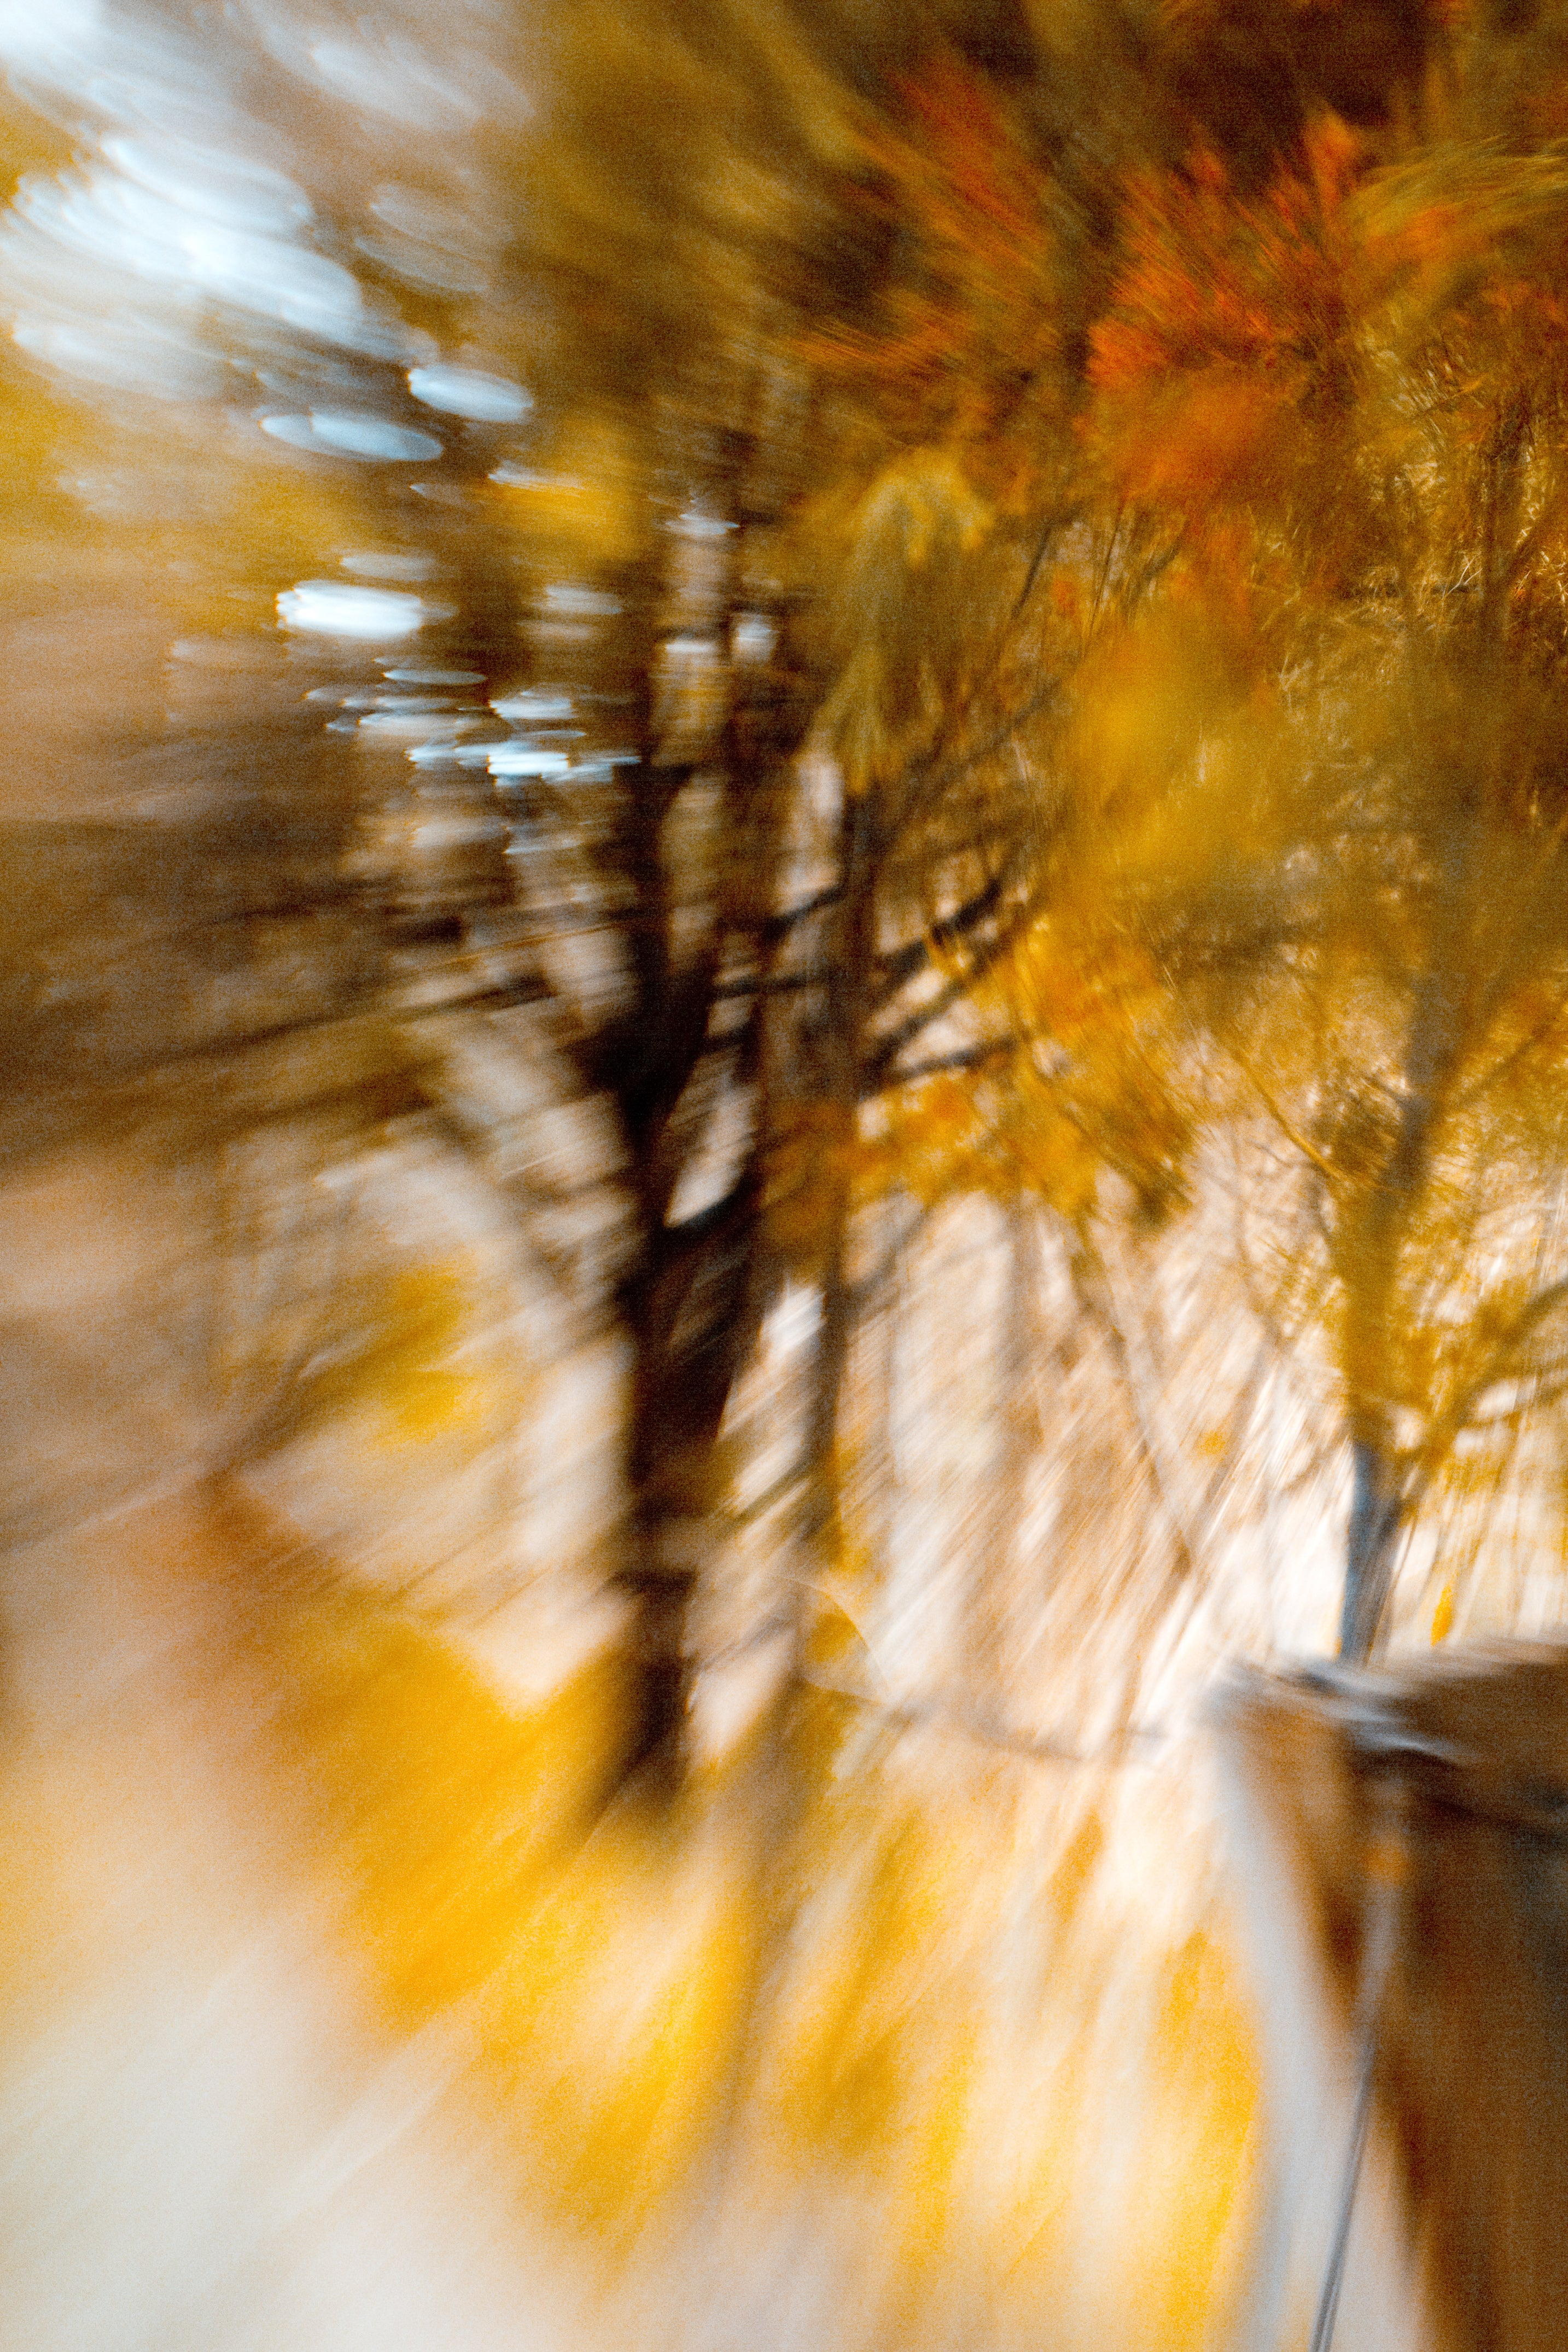 fall foliage yellow orange leaves blur lensbaby journey story marianne ellis